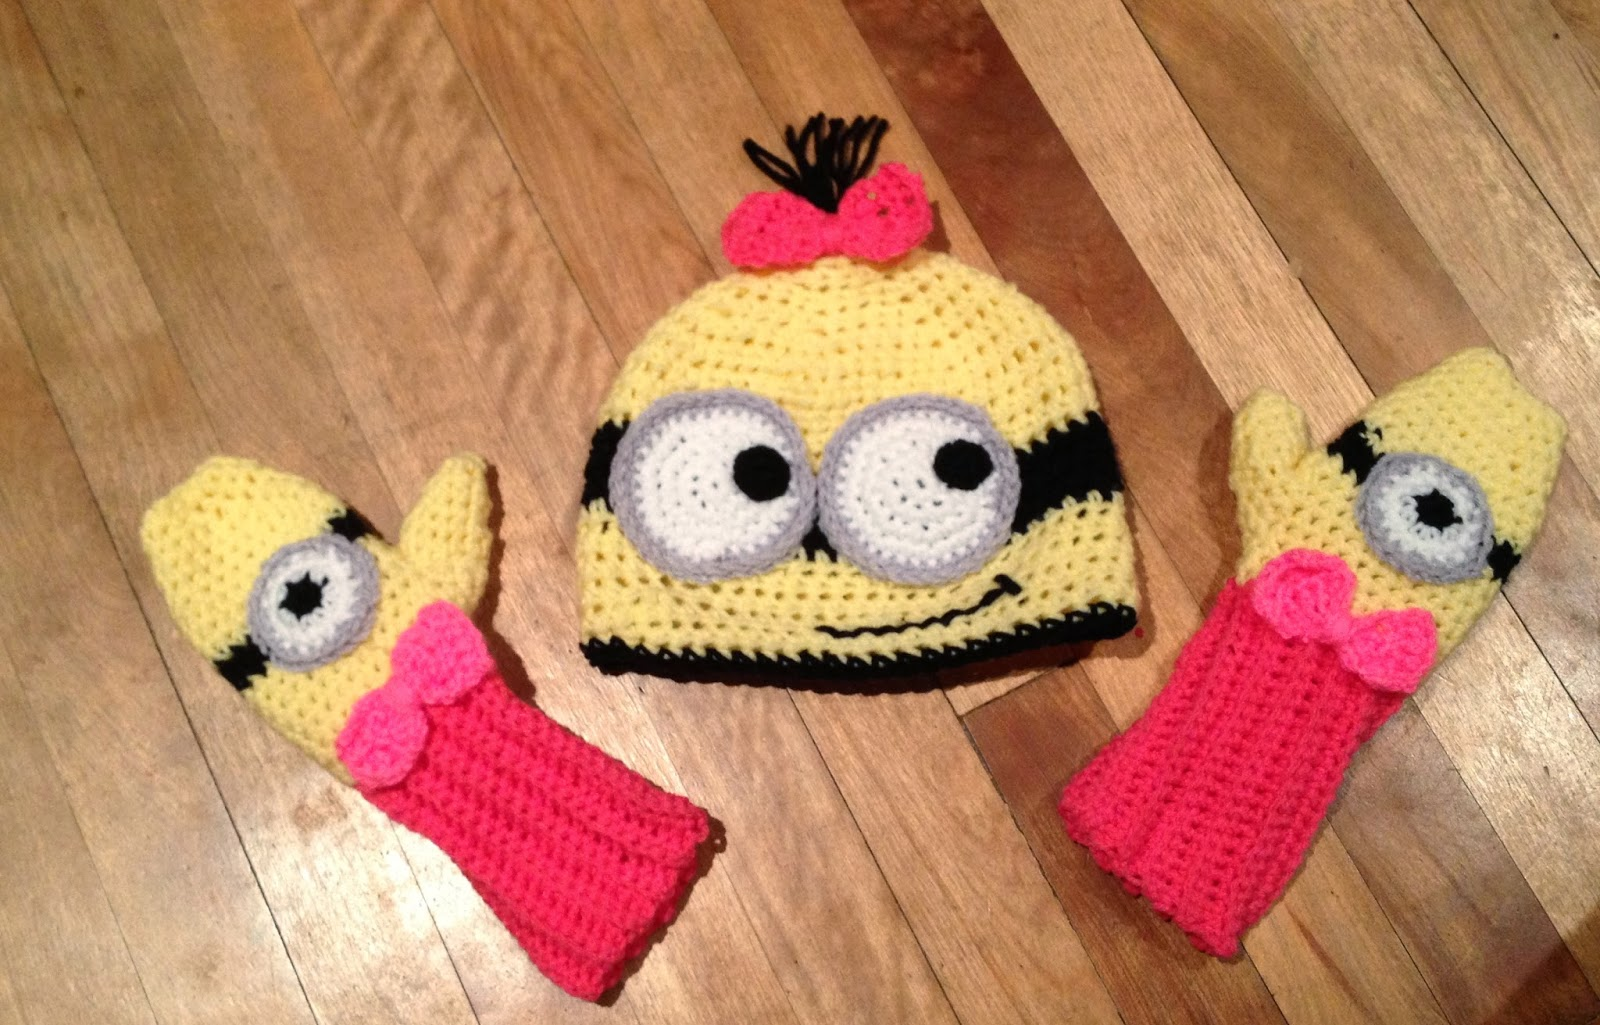 Free Crochet Pattern For Minion Eyes : A Few More Minions to Crochet ? free patterns ...